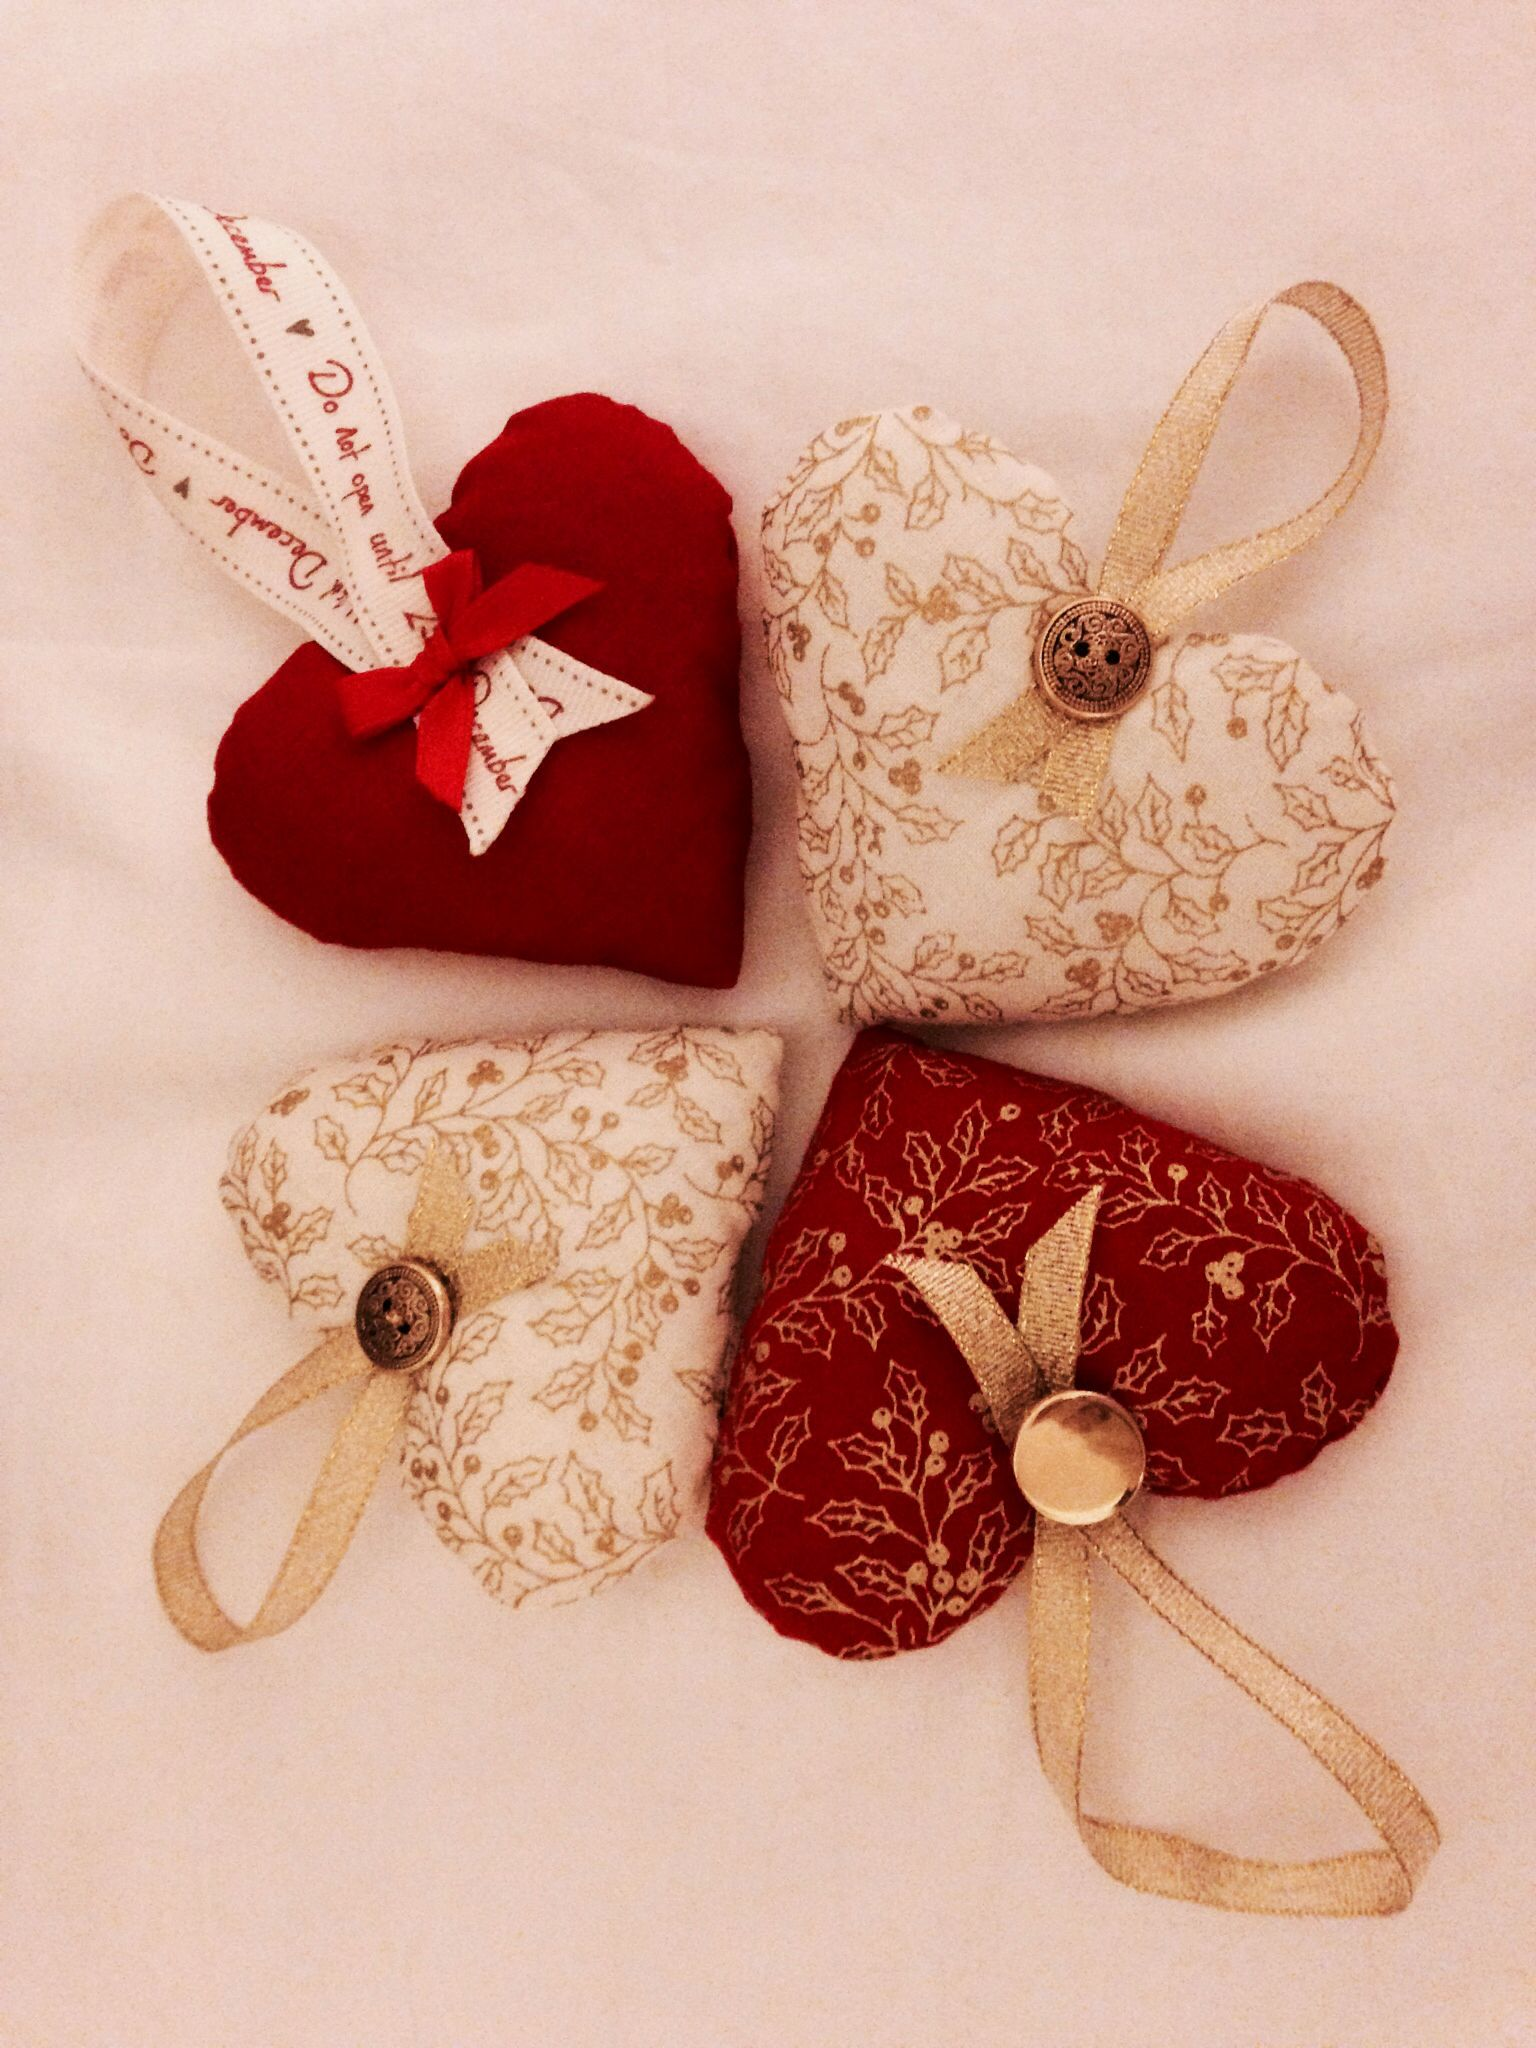 Multiple Diy Hanging Heart Christmas Tree Decorations, With Button And